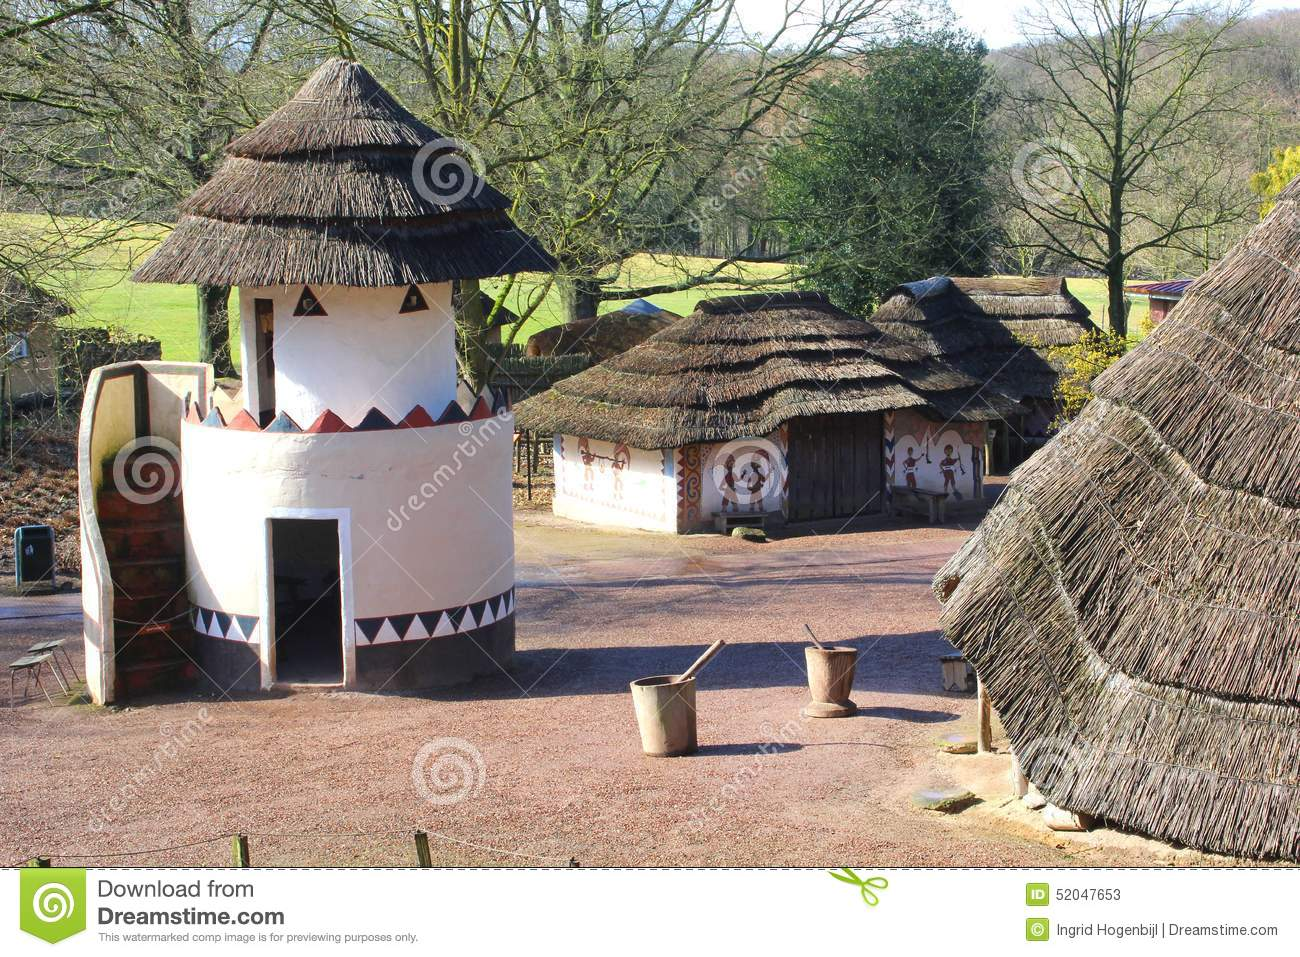 african architecture in the africa museum, berg en dal, groesbeek